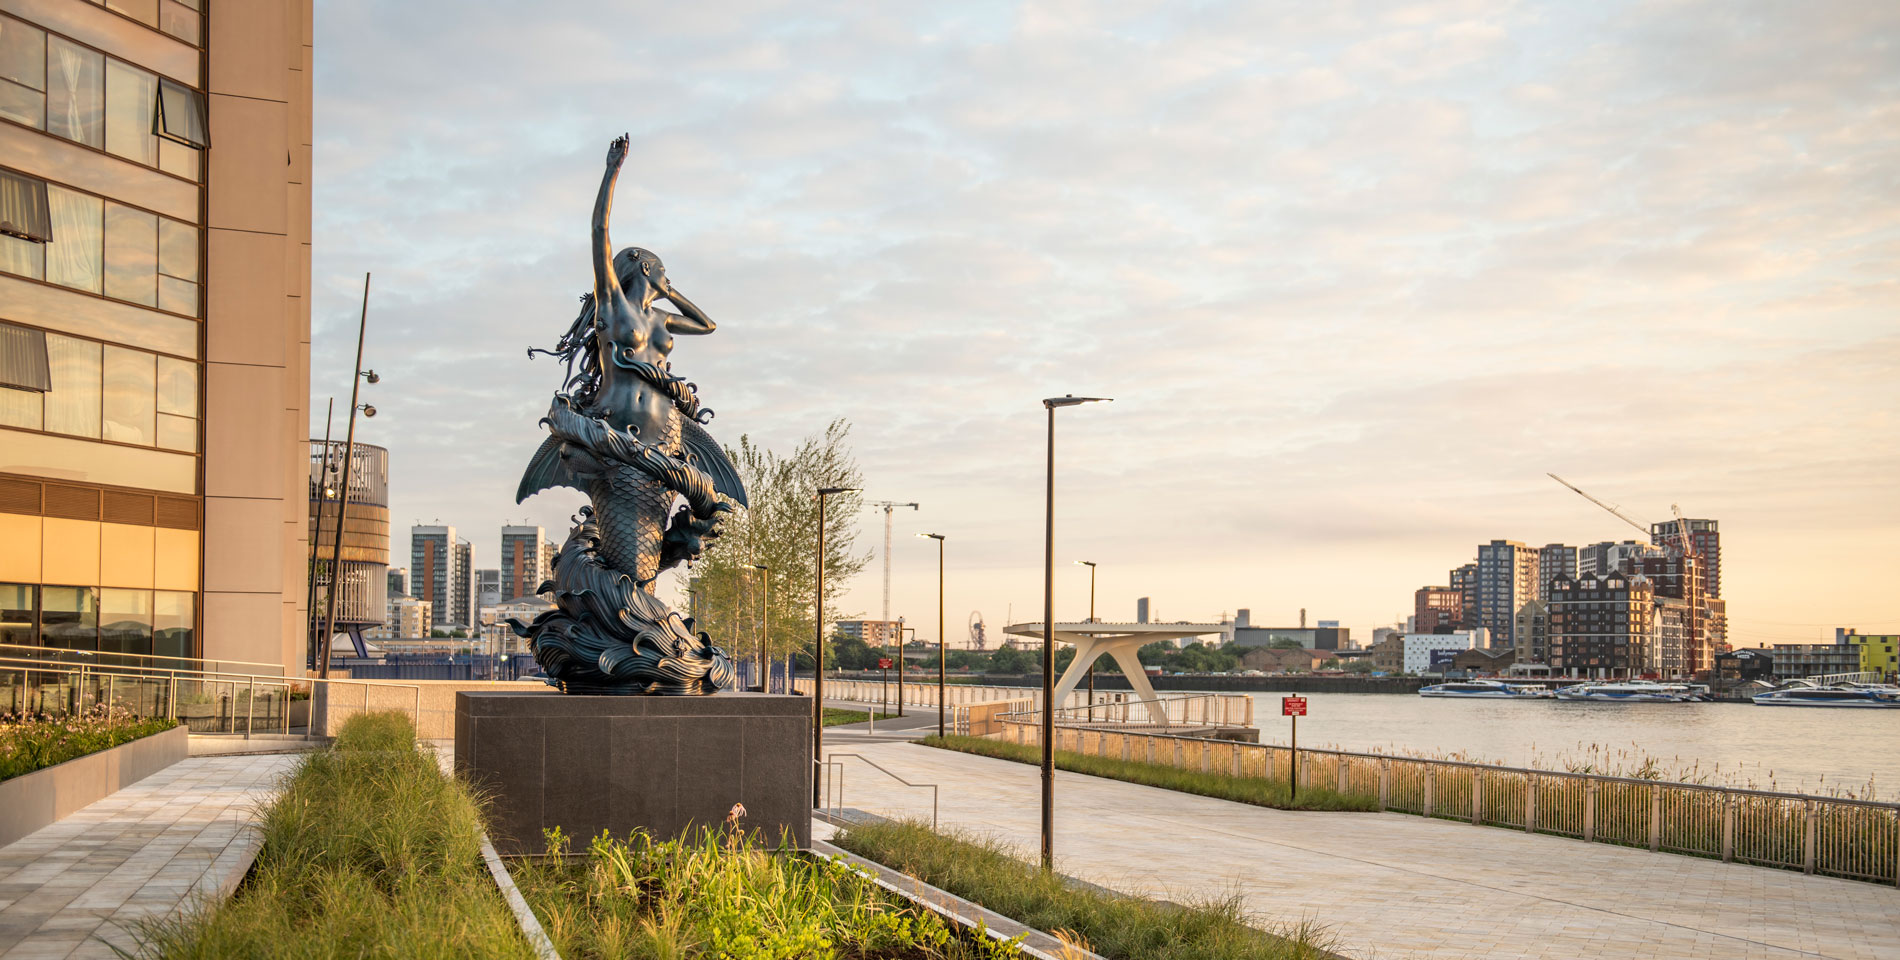 The-Tide,-Greenwich-Peninsula,-Damien-Hirst-Mermaid-@Charles-Emerson